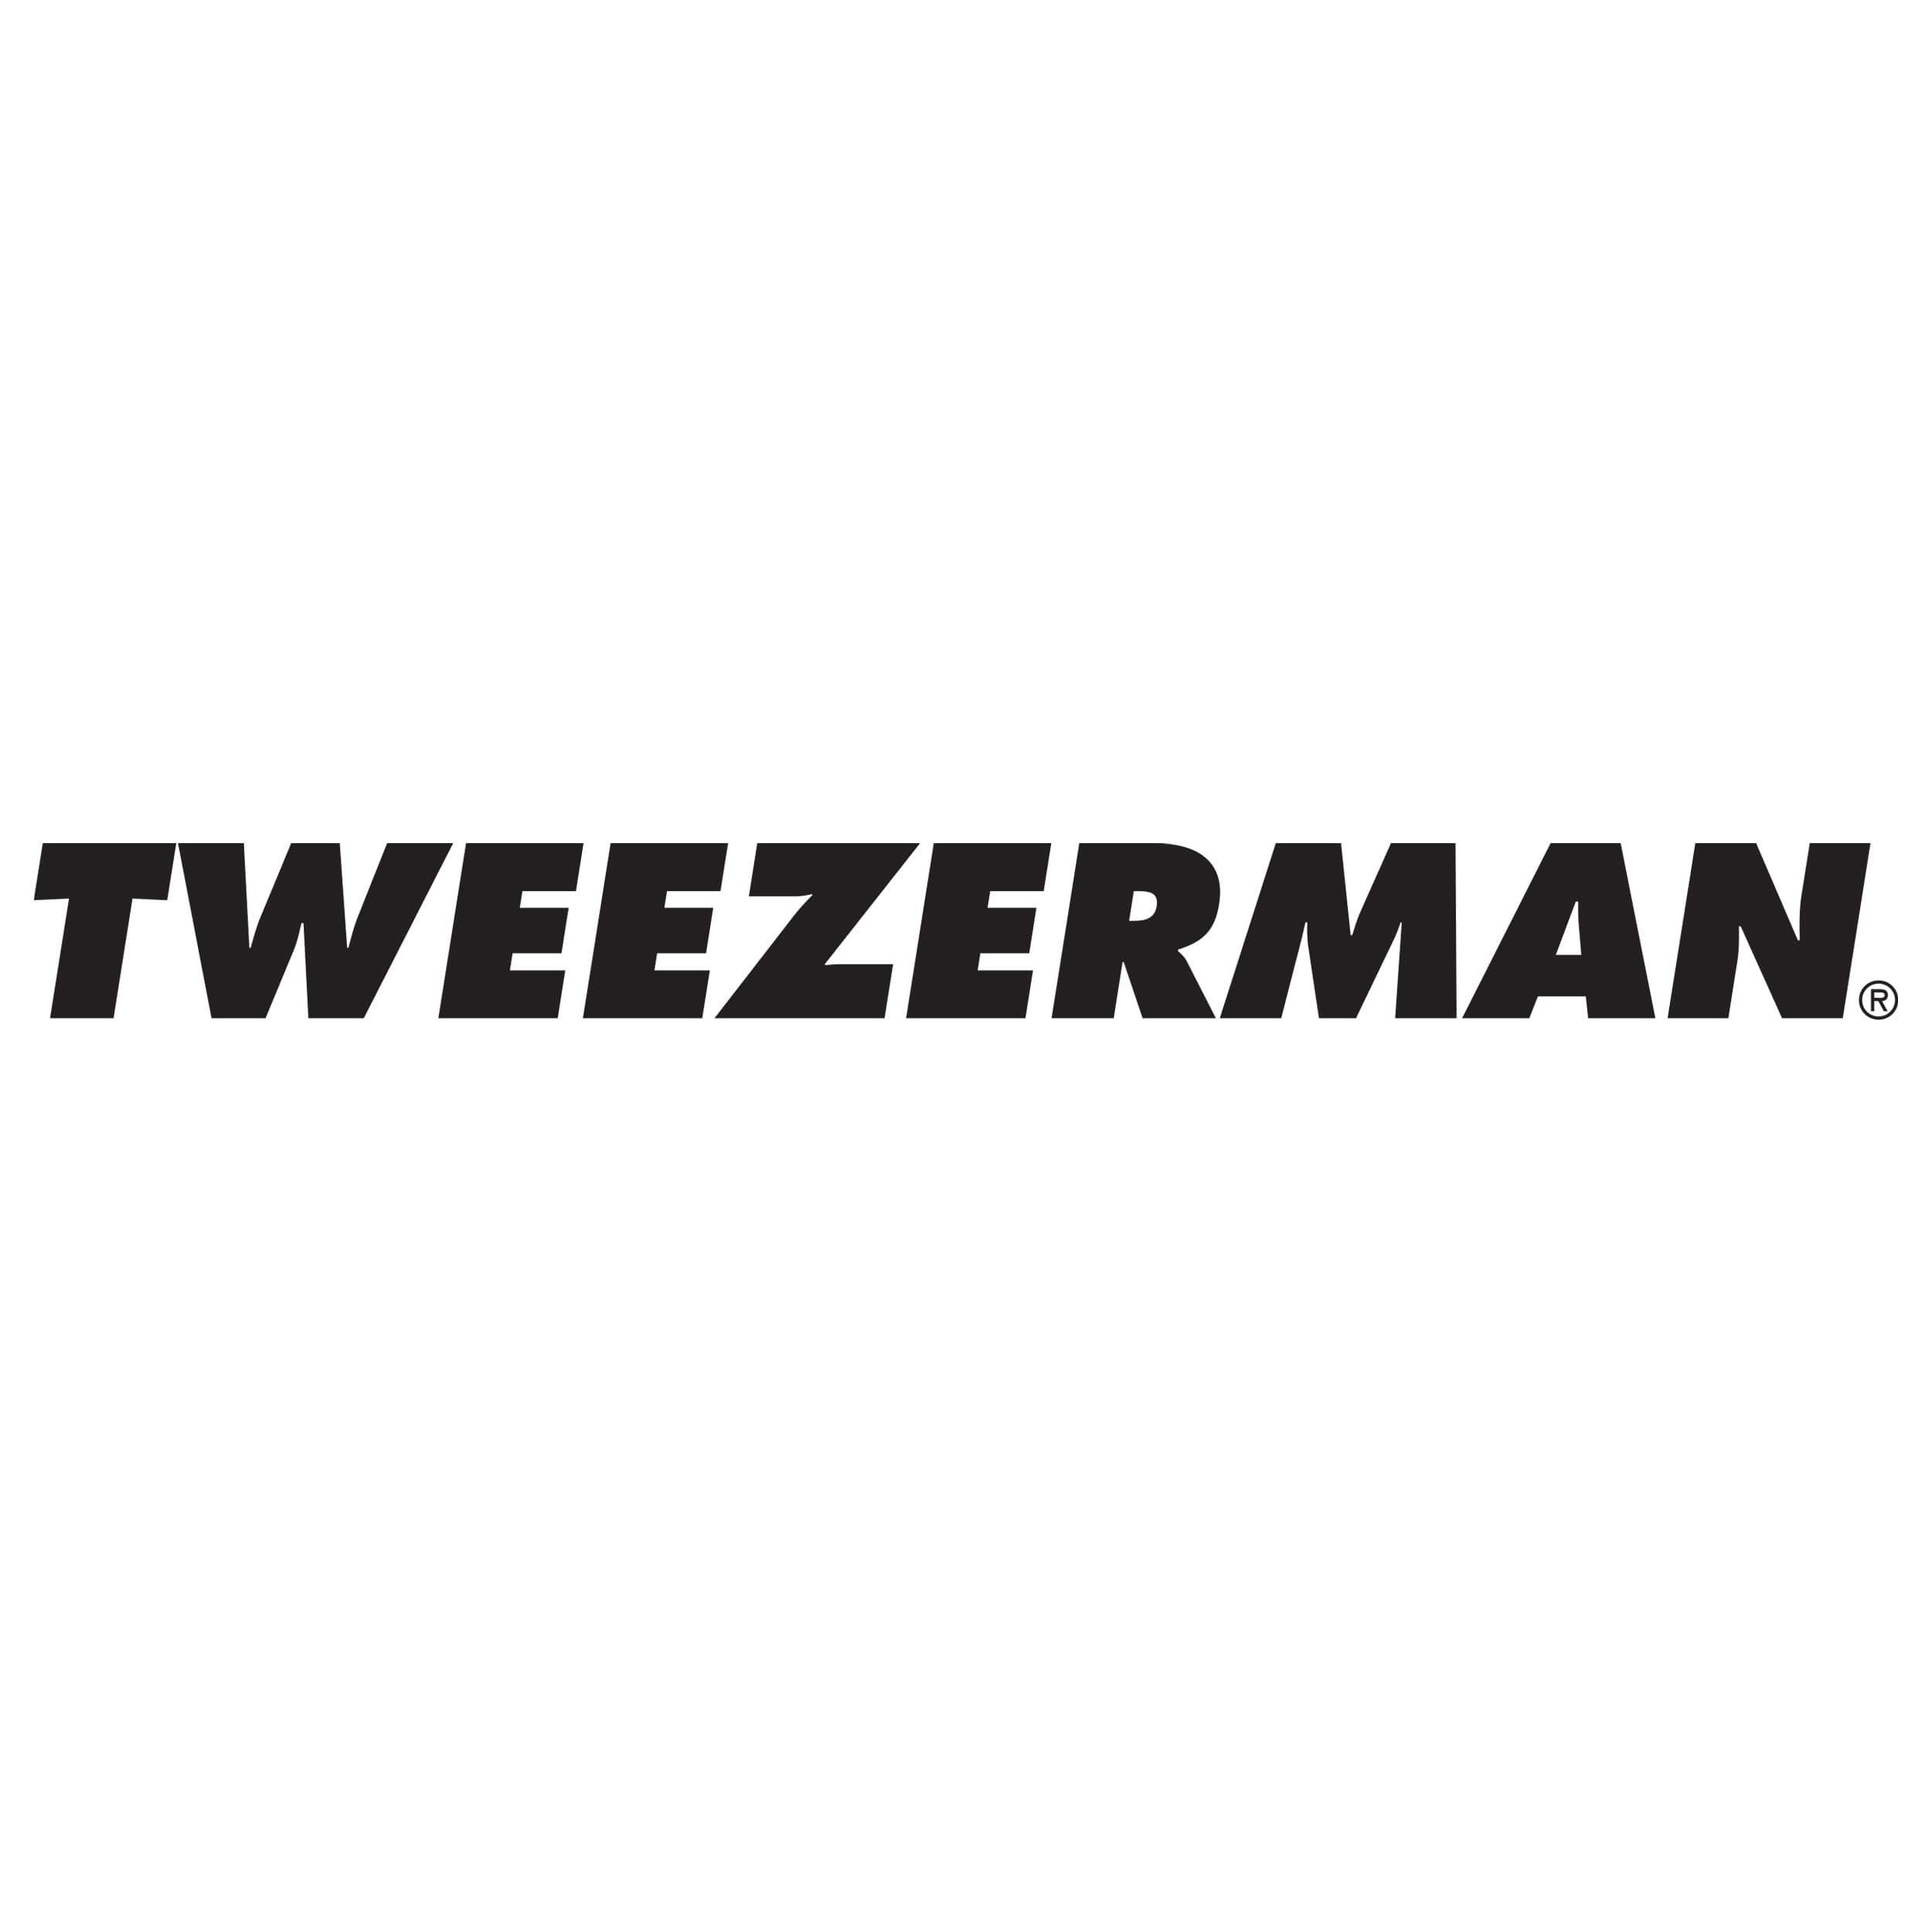 Image of Brow Shaping Scissors and Brush on white background